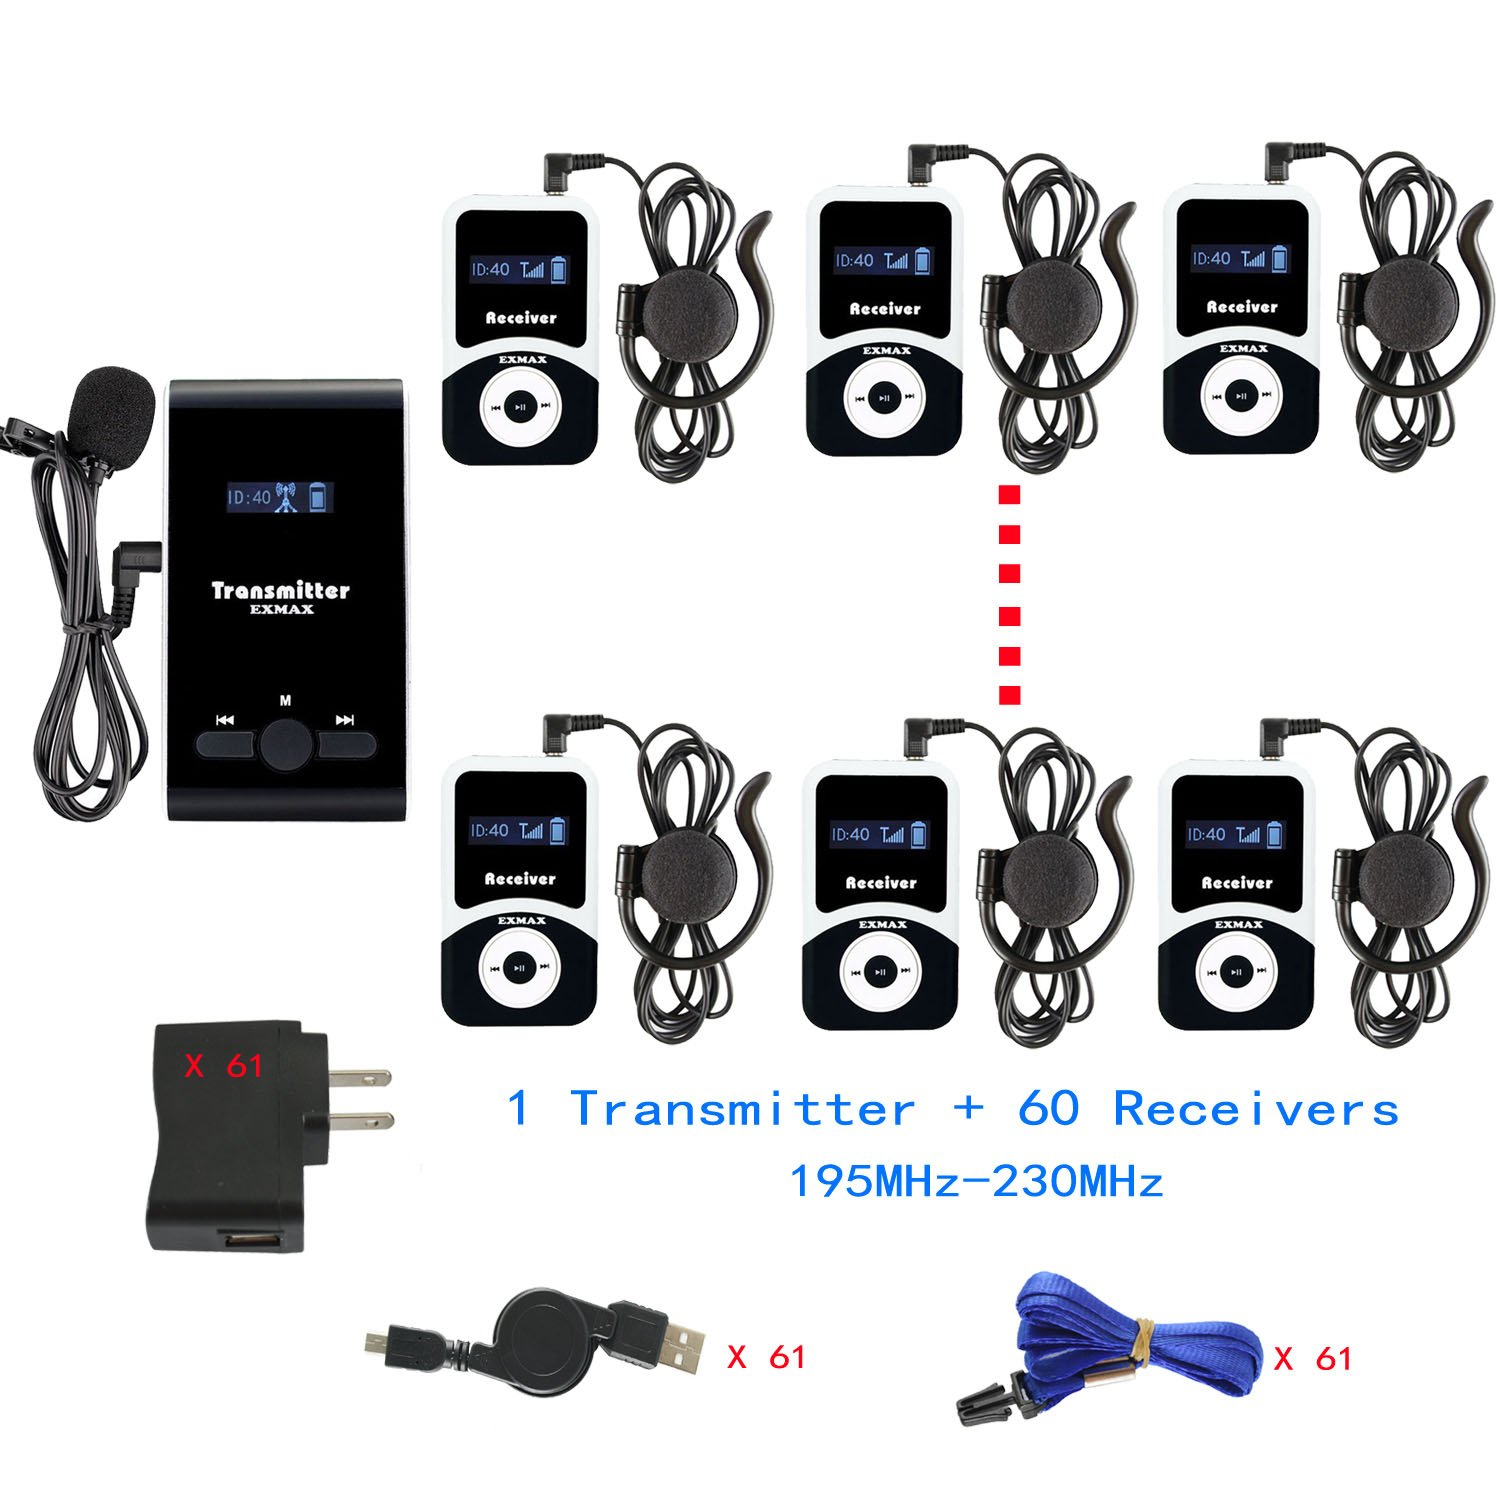 EXMAX ATG-100T 195-230MHz Wireless Tour Guide Monitoring System Microphone Earphone Headset for Church Simultaneous Interpreting Teaching Conference Travel Interpretation(1 Transmitter 60 Receivers)